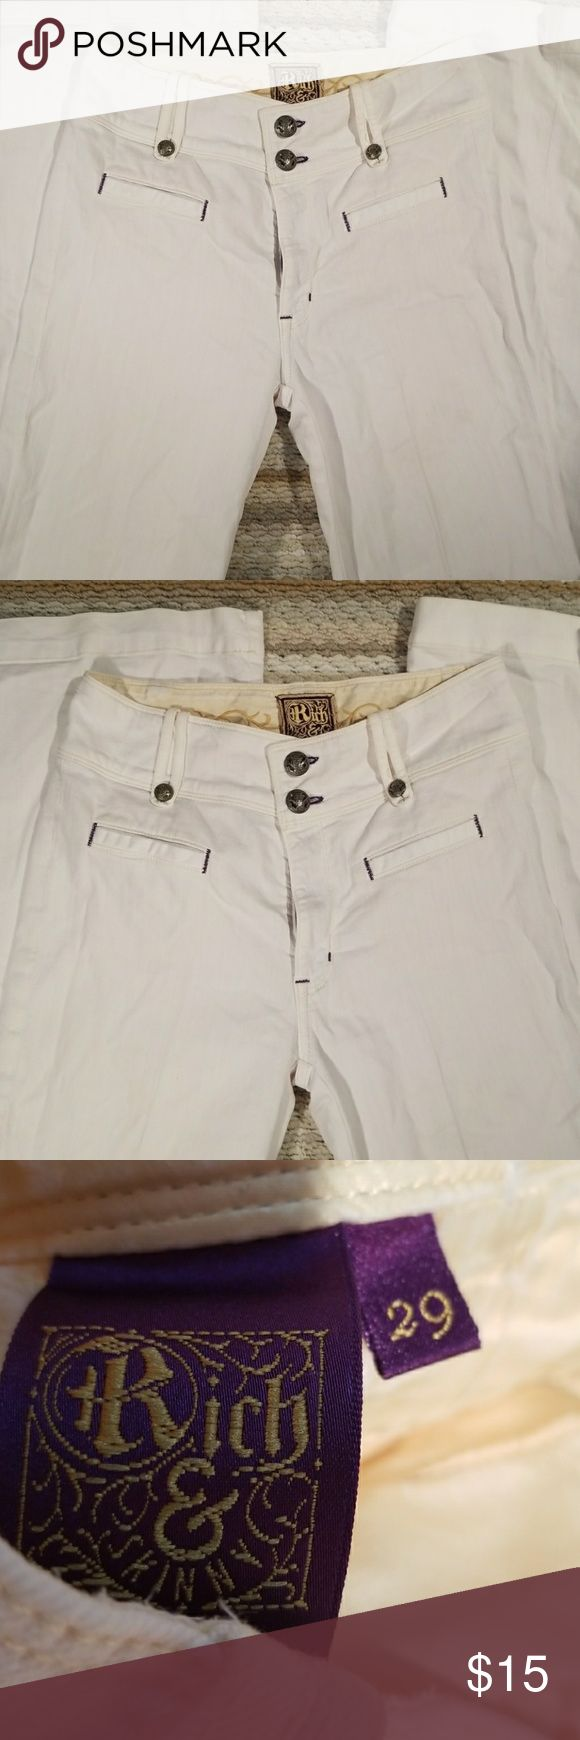 Rich & Skinny Women Sz 29 White Flare Jeans Length 43 inseam 33 Perfect condition with no stains.  Flared bottom hem. Rich & Skinny Jeans Flare & Wide Leg